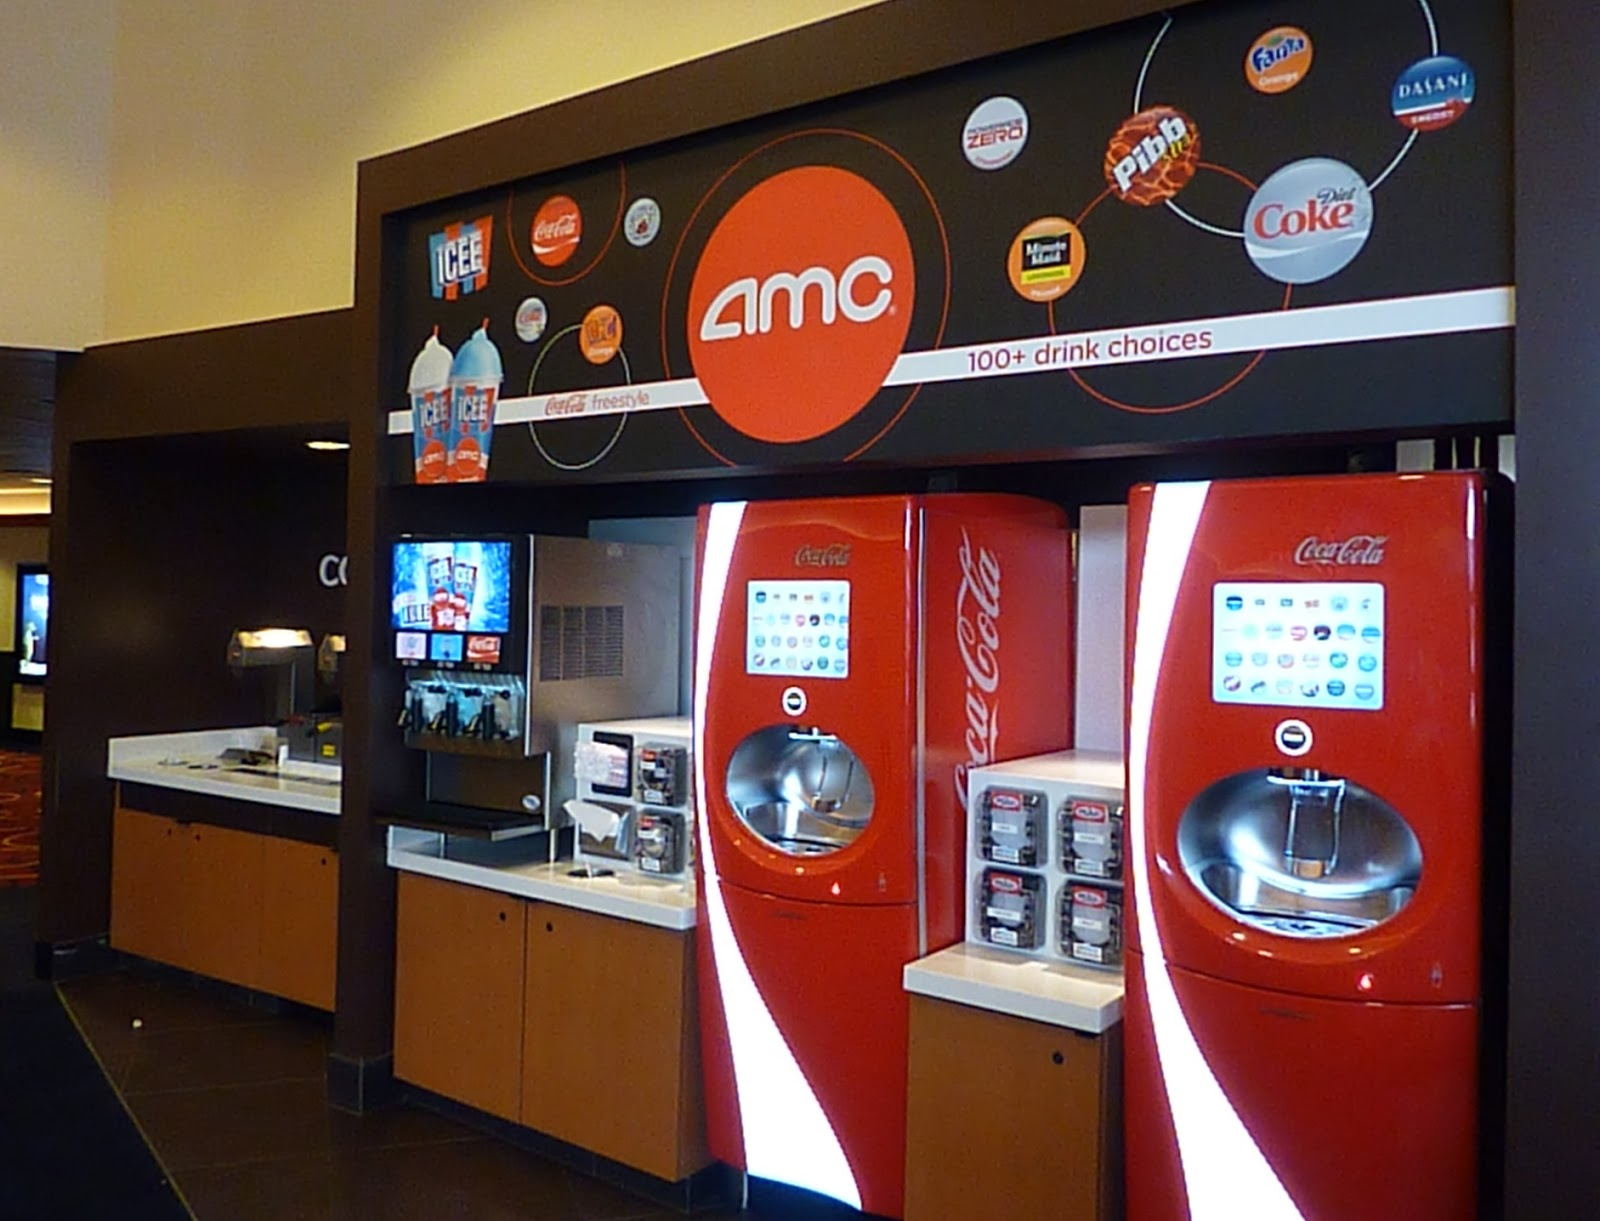 Self Serve Beverage Bar Complete With Touch Screen Soda Fountains That Offer Over 100 Options And Three Flavors Of Icee